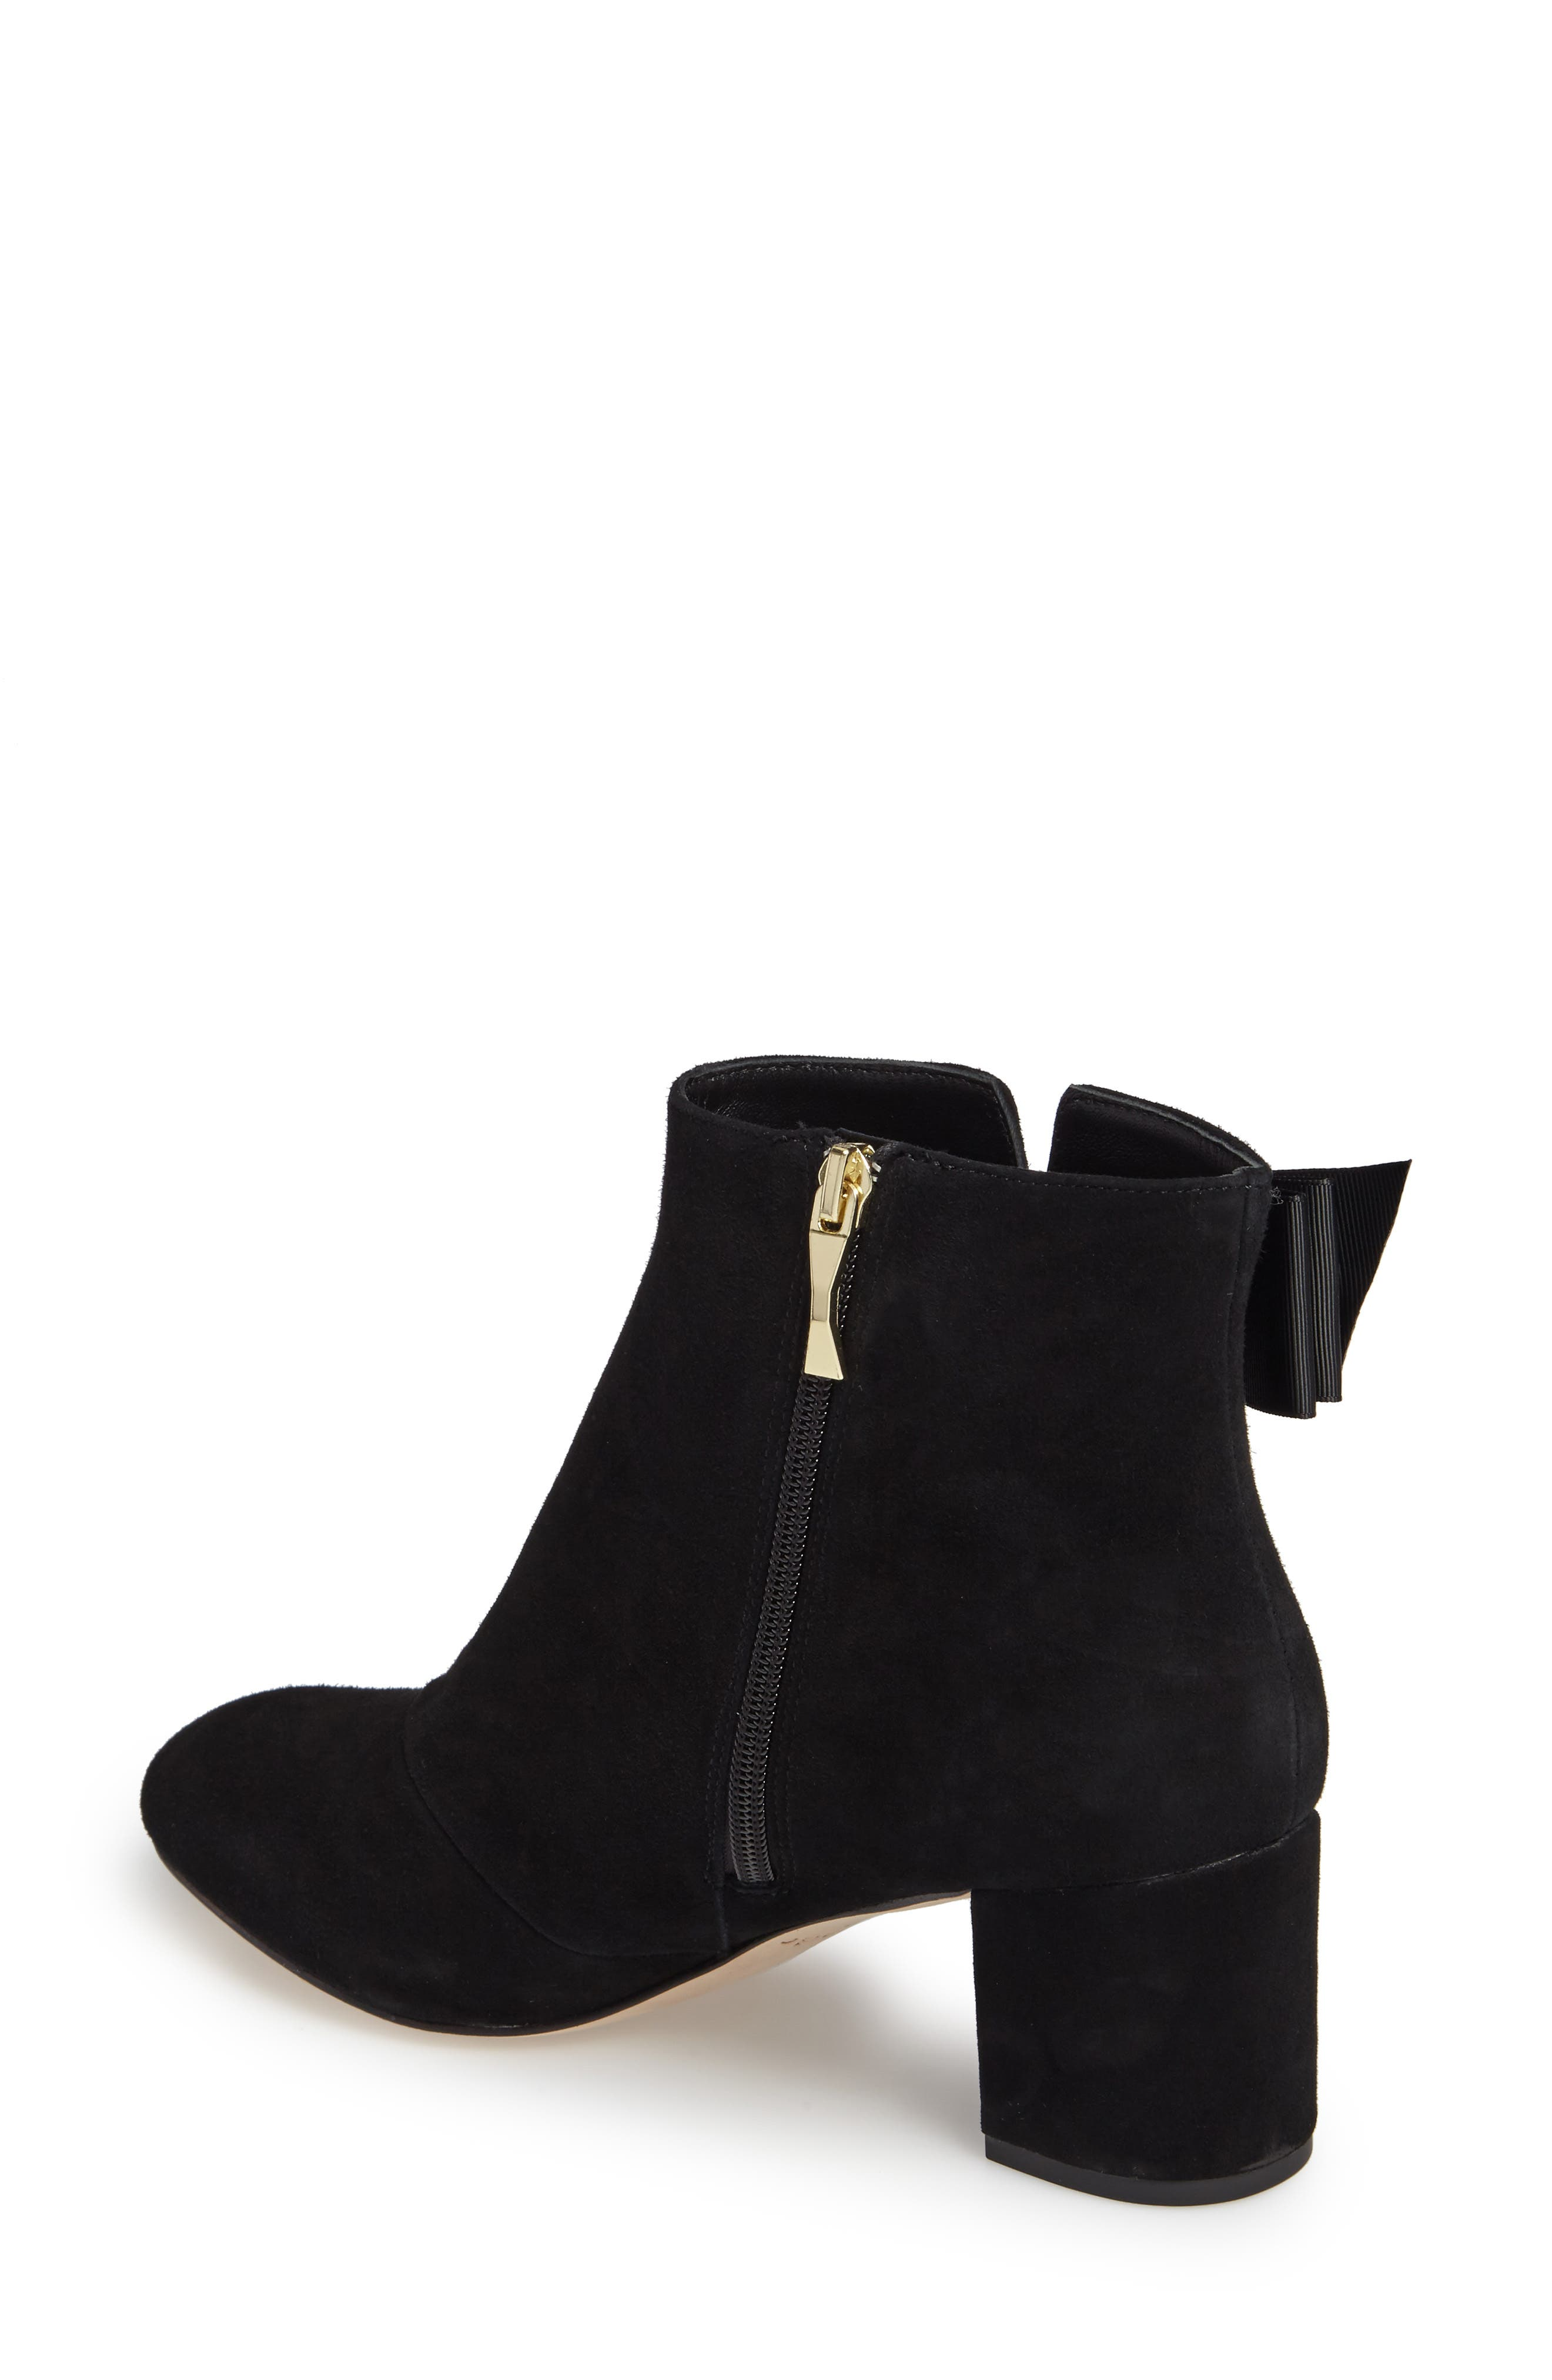 Alternate Image 2  - kate spade new york langley bow bootie (Women)